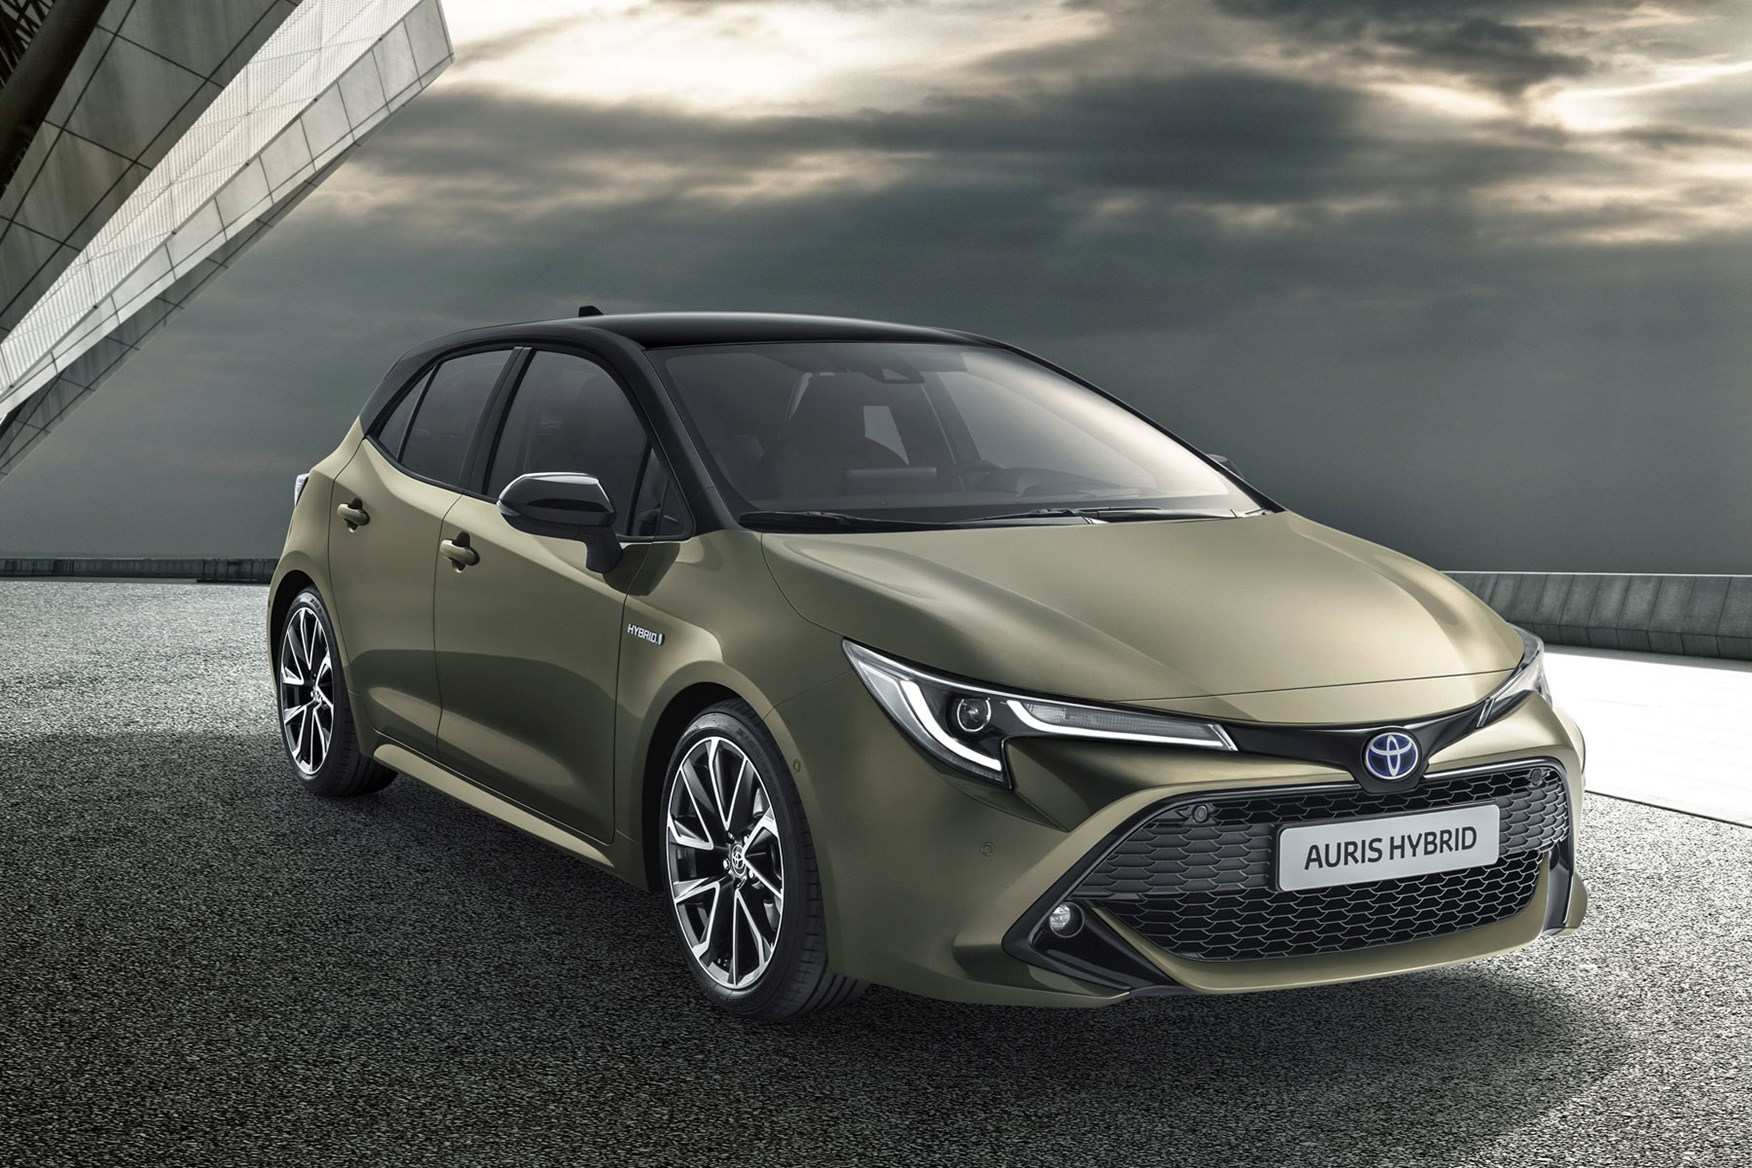 93 Gallery of The Toyota 2019 Europa Picture Release Date And Review New Concept by The Toyota 2019 Europa Picture Release Date And Review